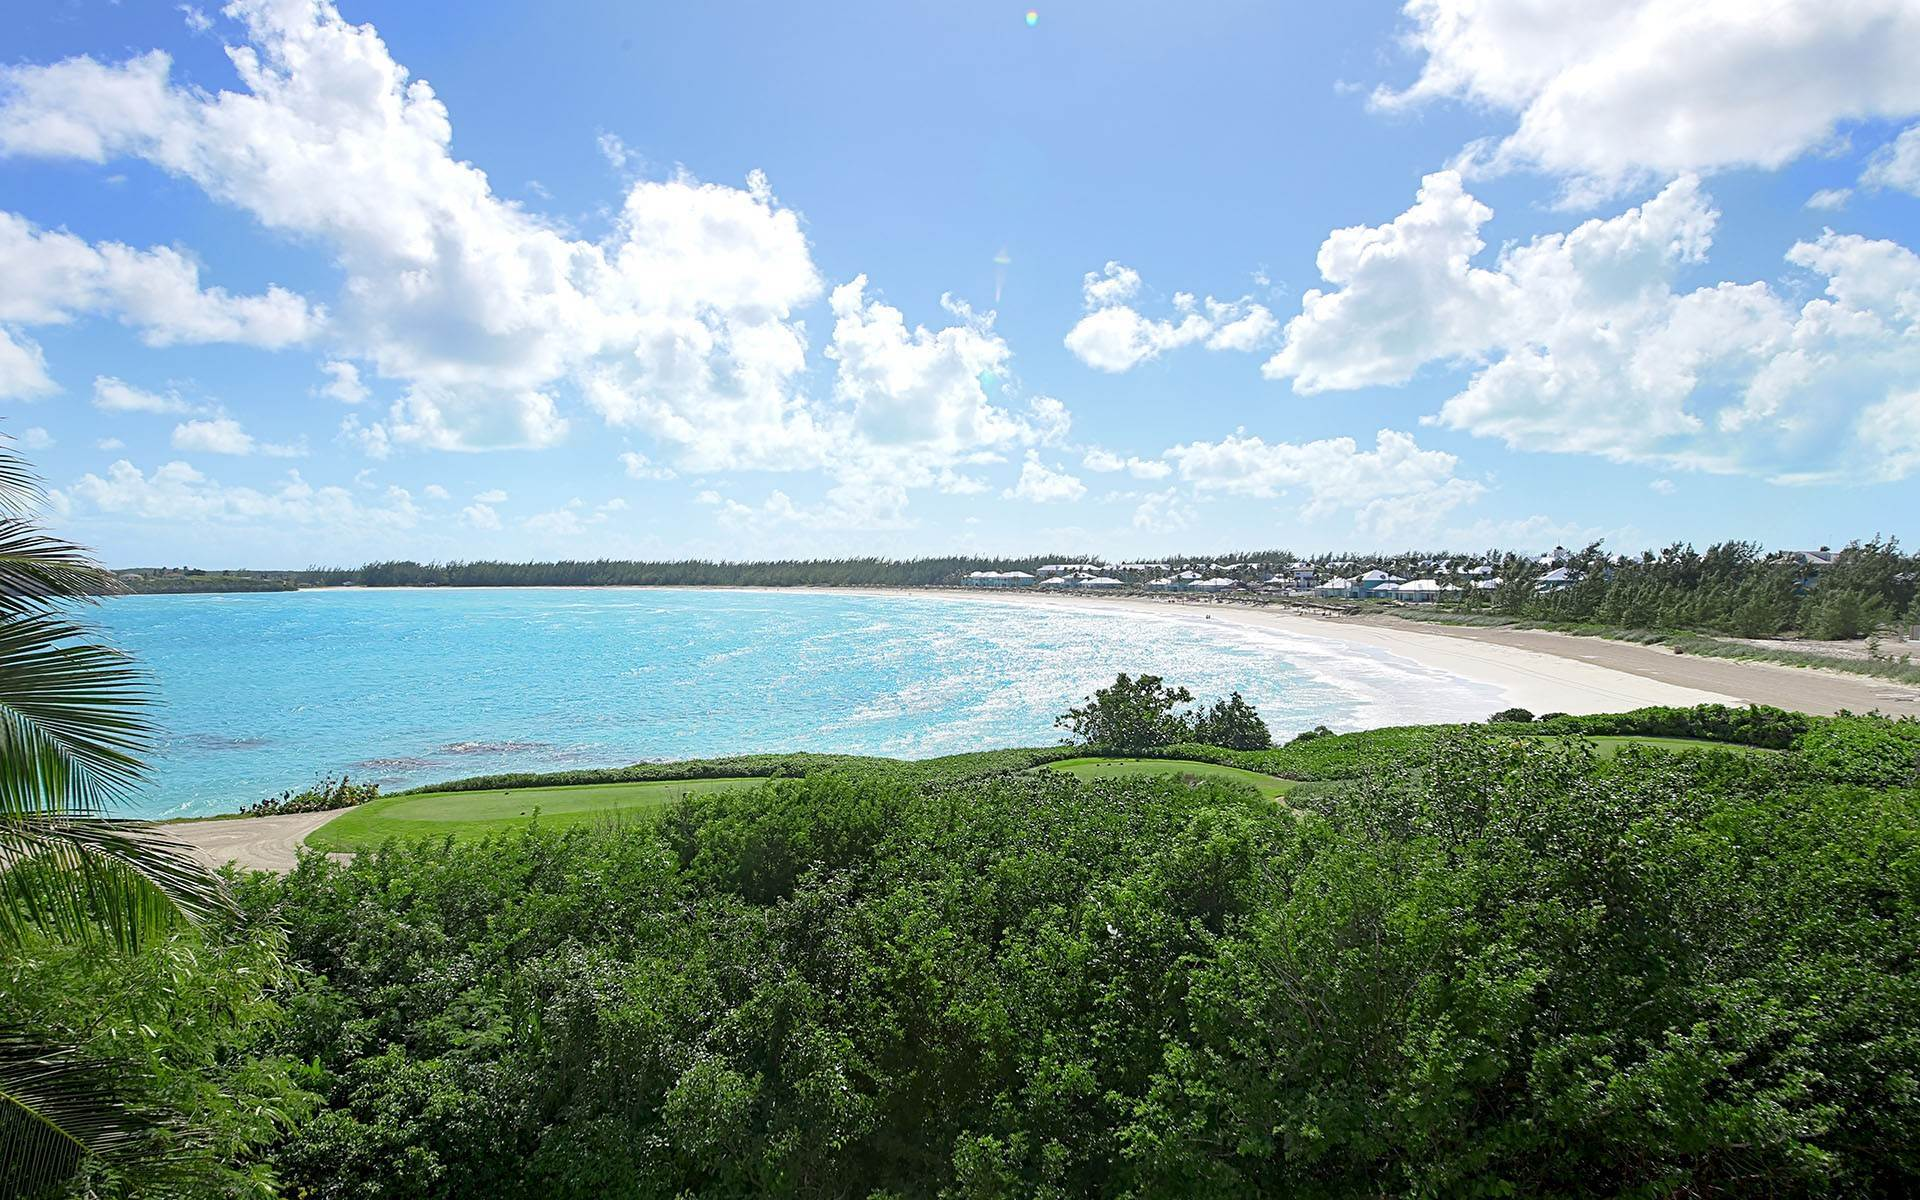 Co-op / Condo for Sale at Ocean Front Two Bedroom Villa - MLS 32112 Emerald Bay, Exuma, Bahamas